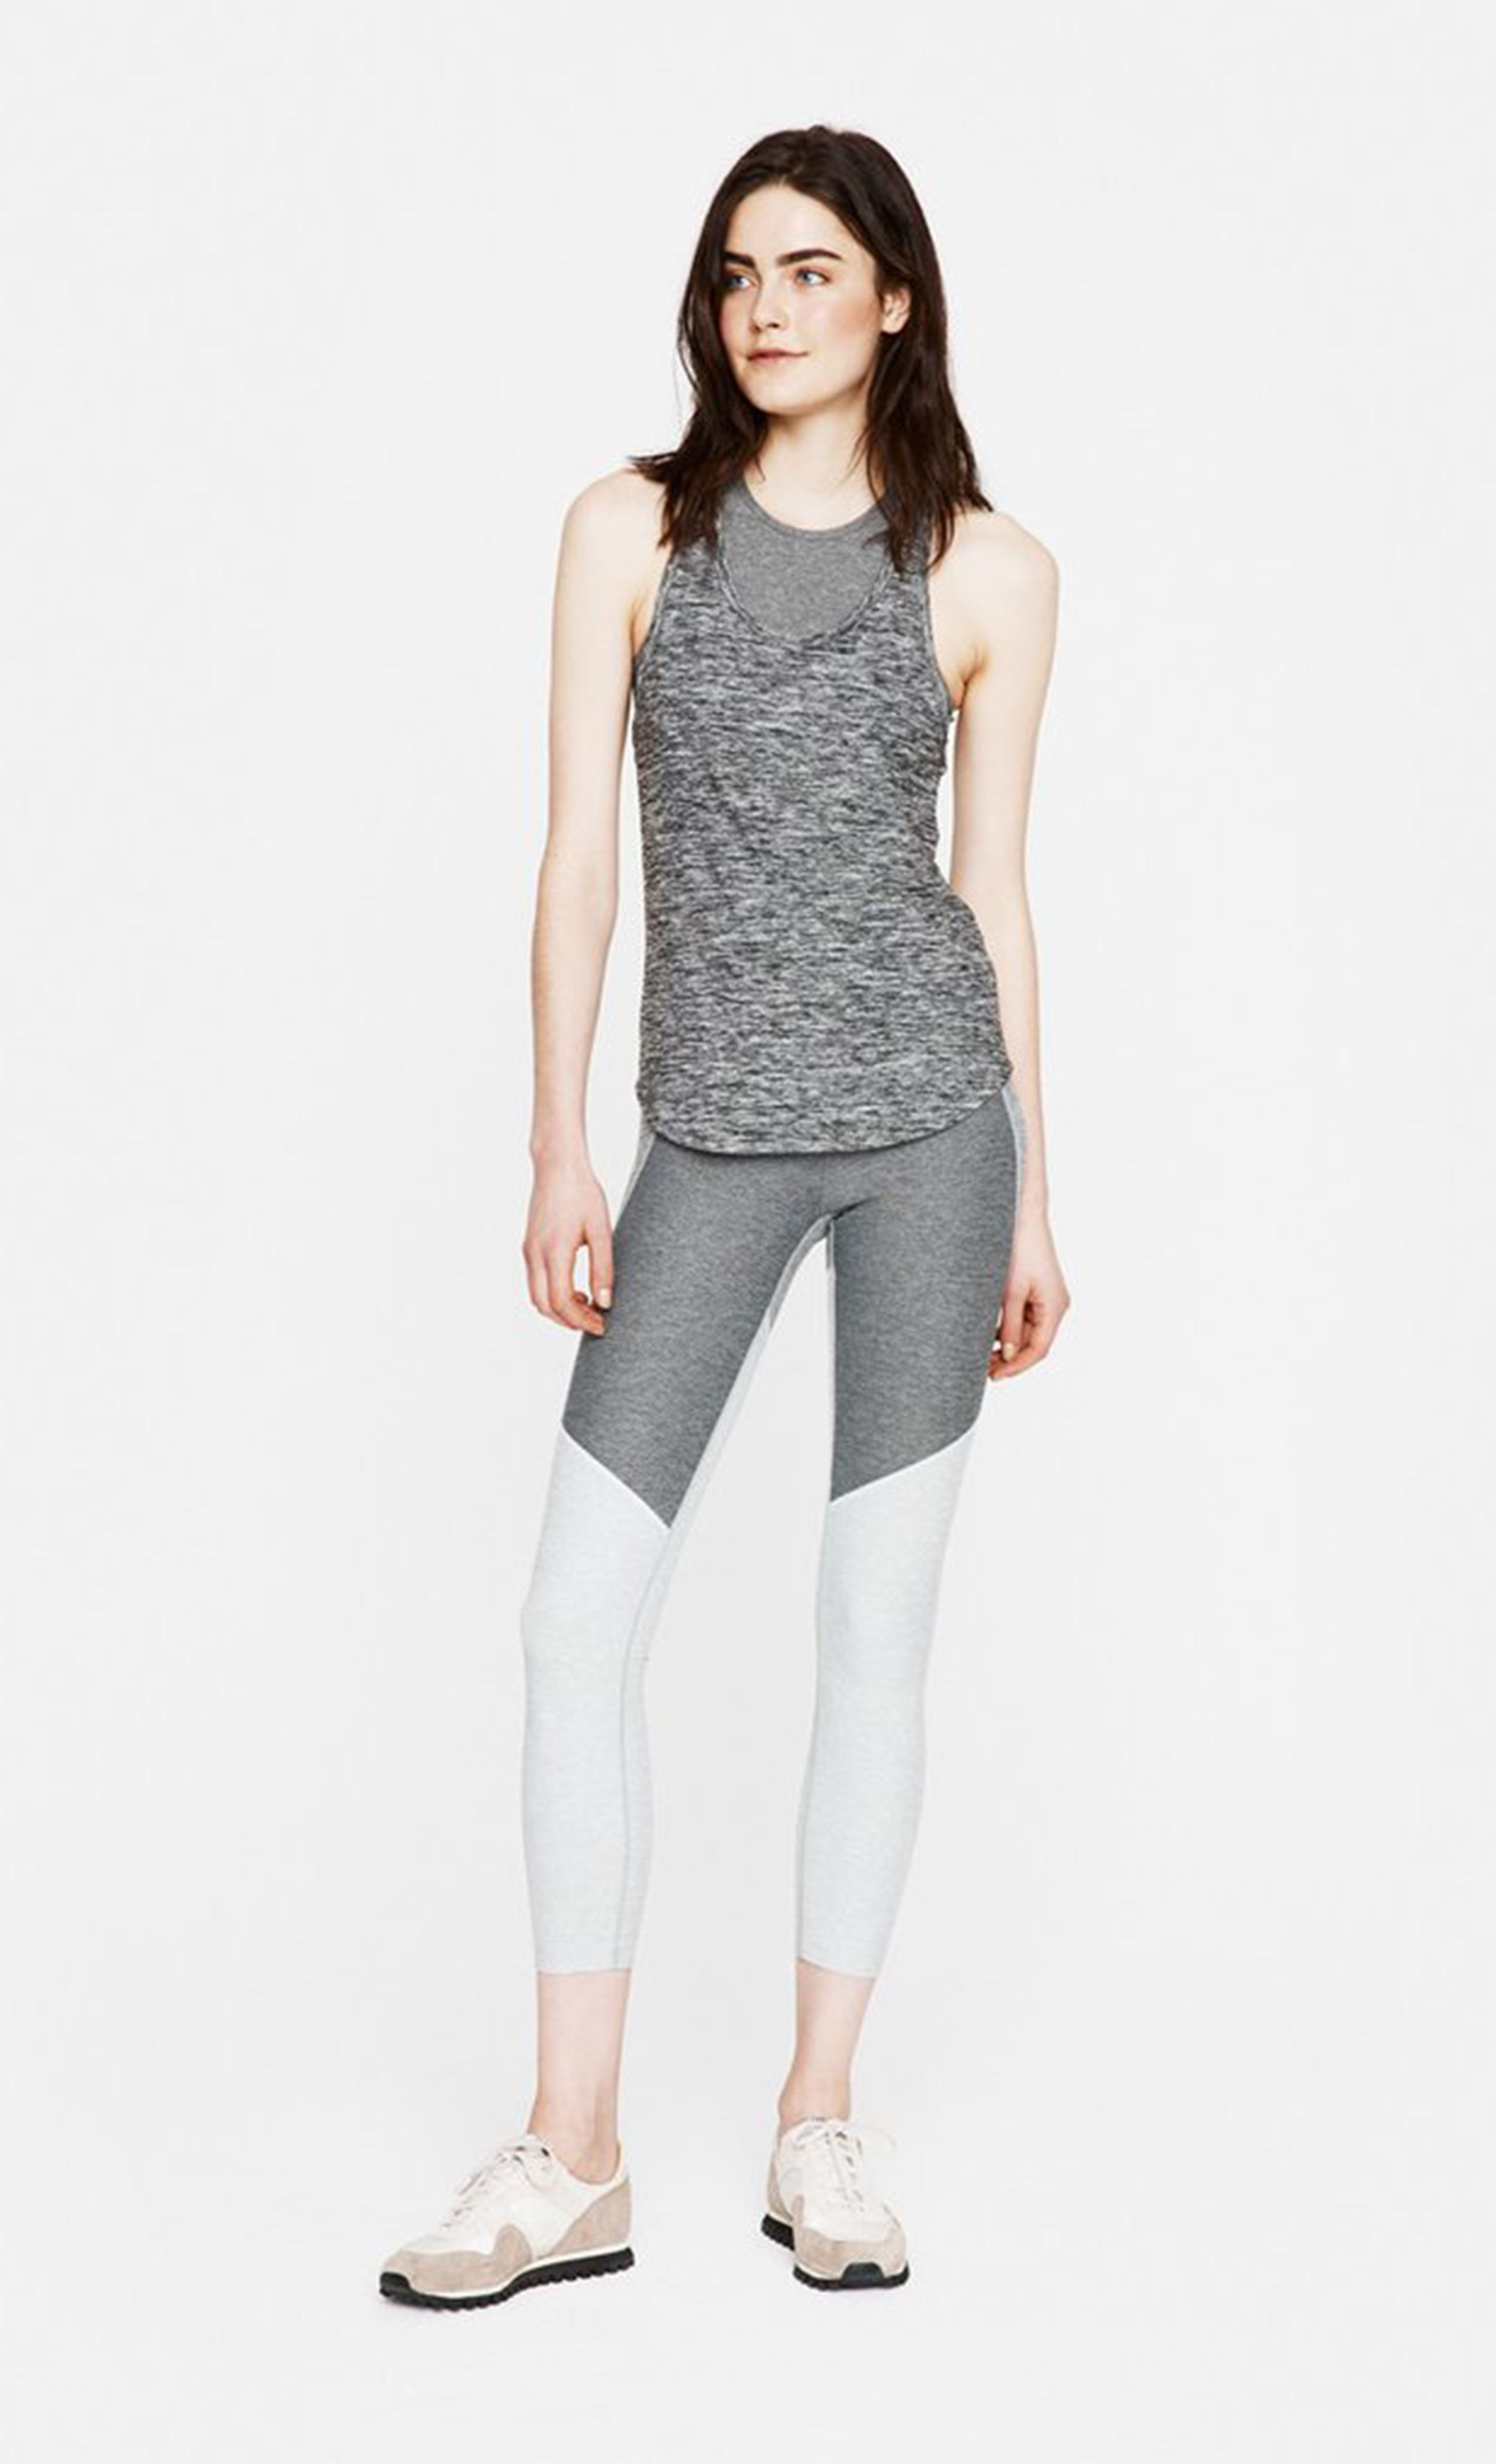 e37fabacb2b These Activewear Brands Cater to Petite Women, and We're Jumping for ...